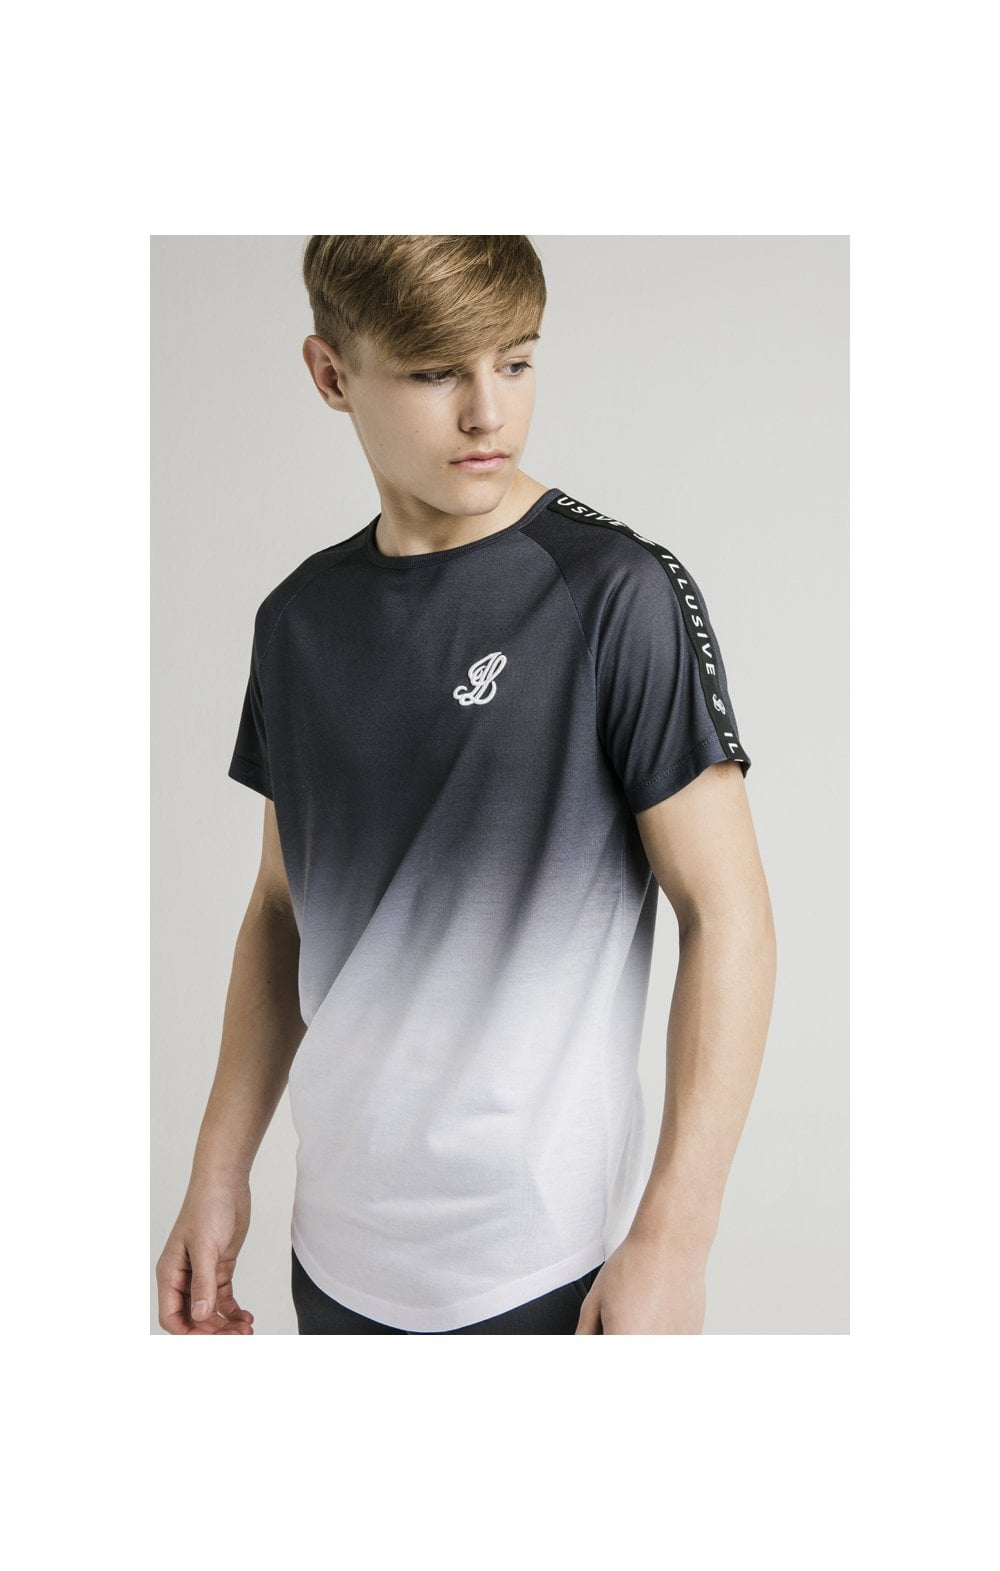 Load image into Gallery viewer, Illusive London S/S Fade Taped Tee - Grey & White (1)